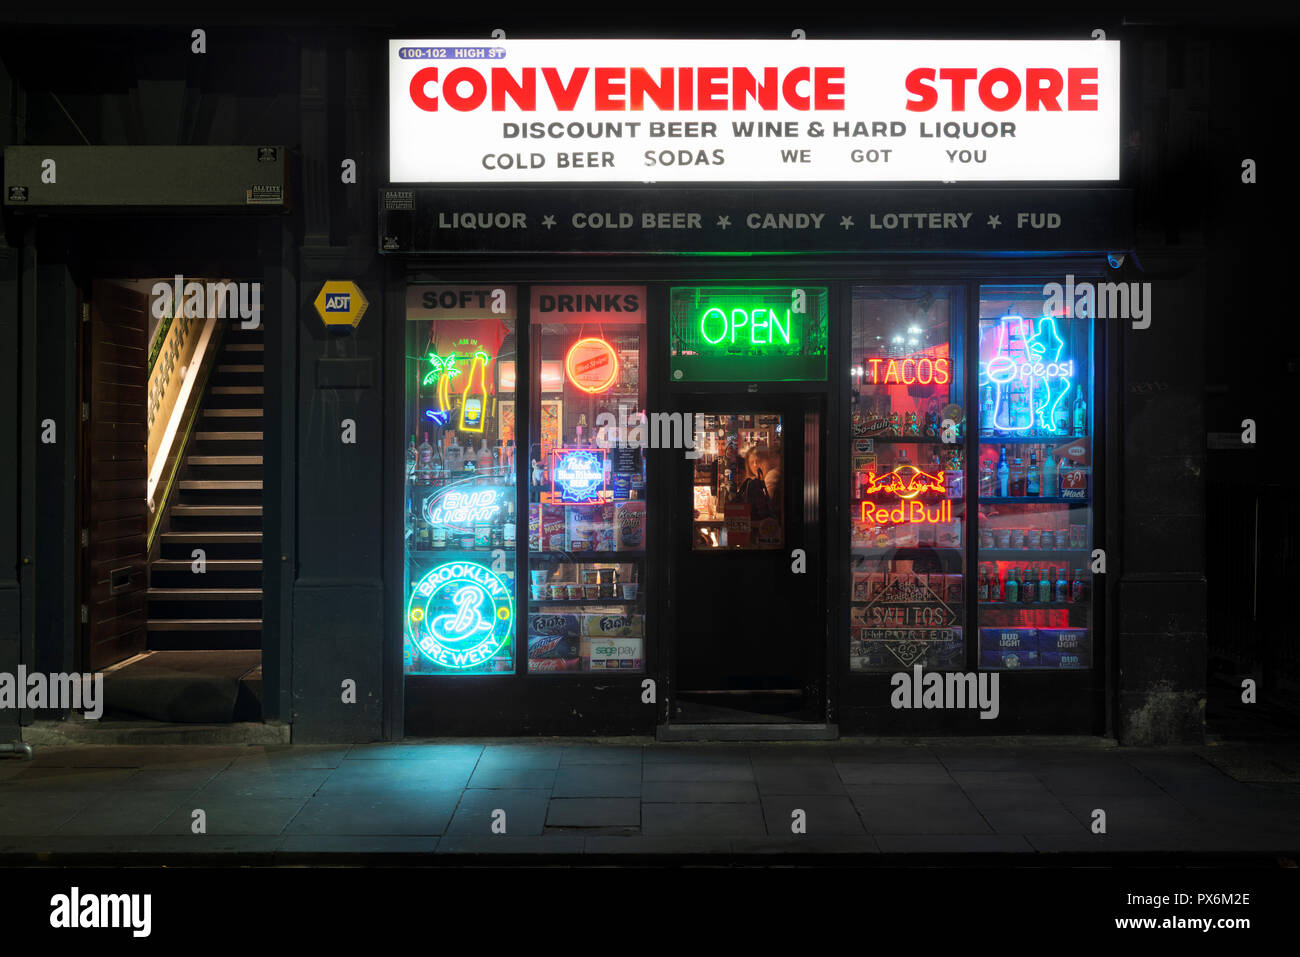 The Convenience Store bar located on High Street in the Northern Quarter area of Manchester city centre, UK. Stock Photo